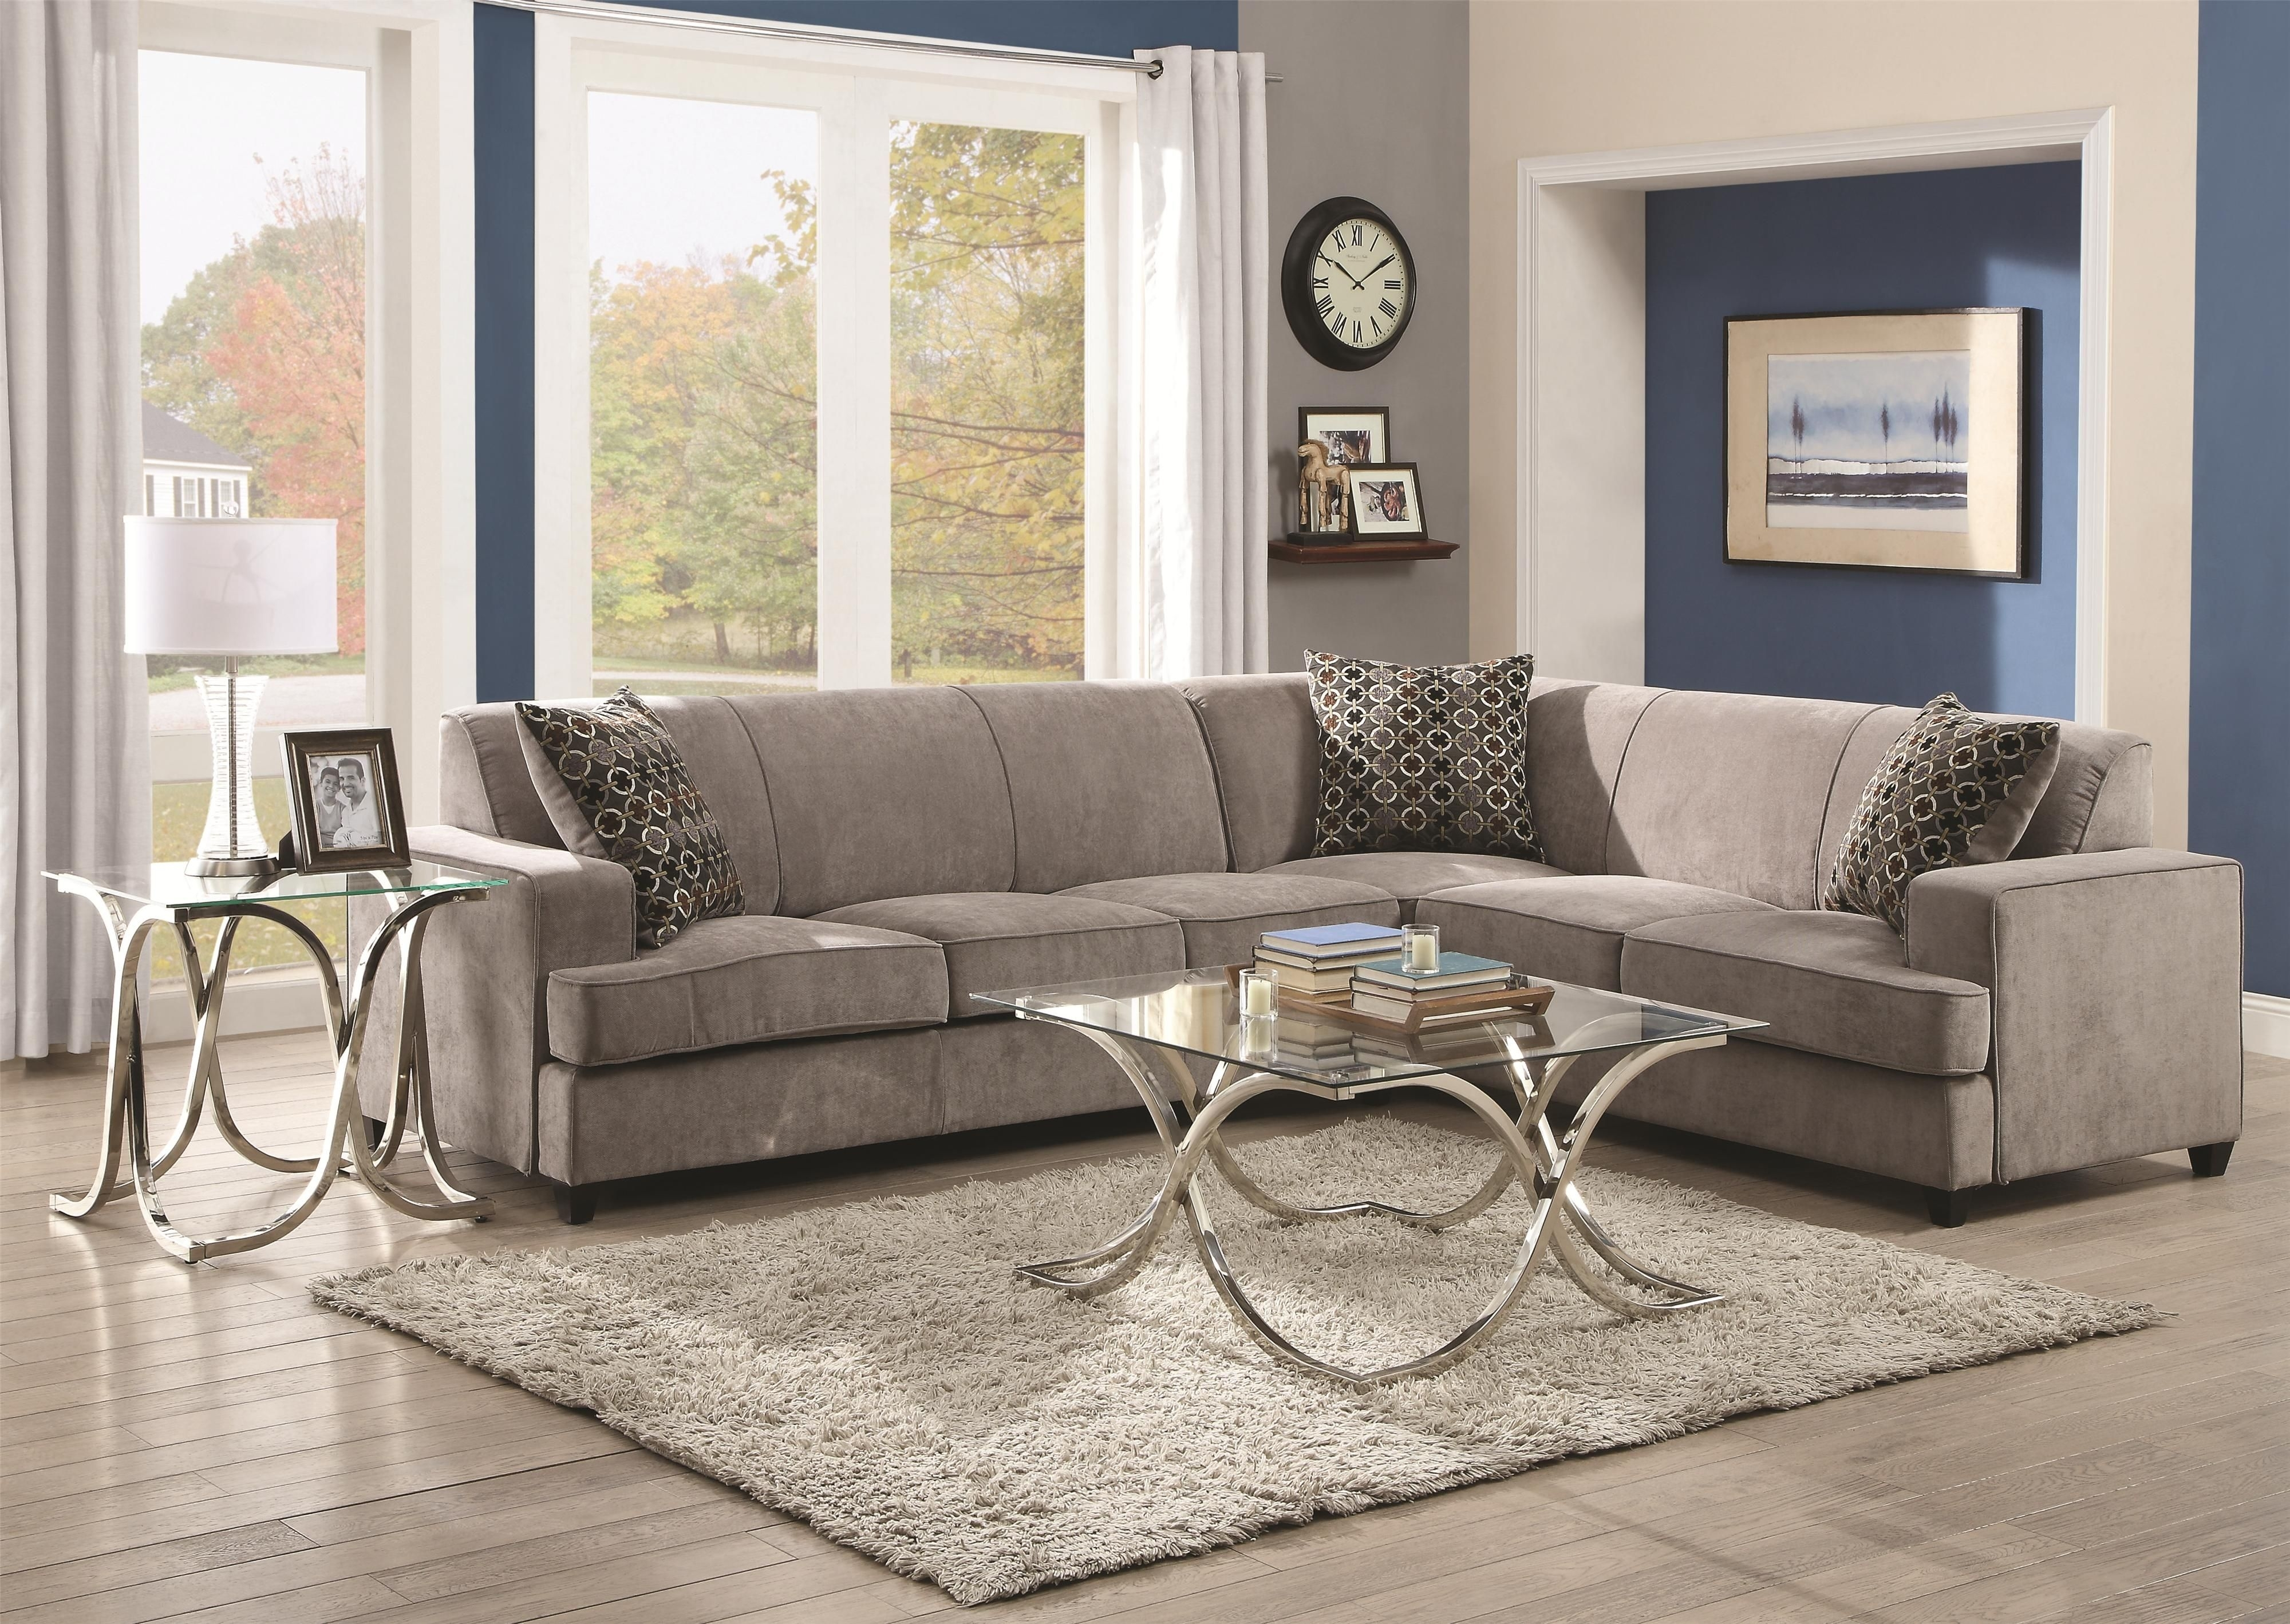 Tess Sectional Sofa For Cornerscoaster | Shades Of Grey Throughout Collins Sofa Sectionals With Reversible Chaise (View 27 of 30)